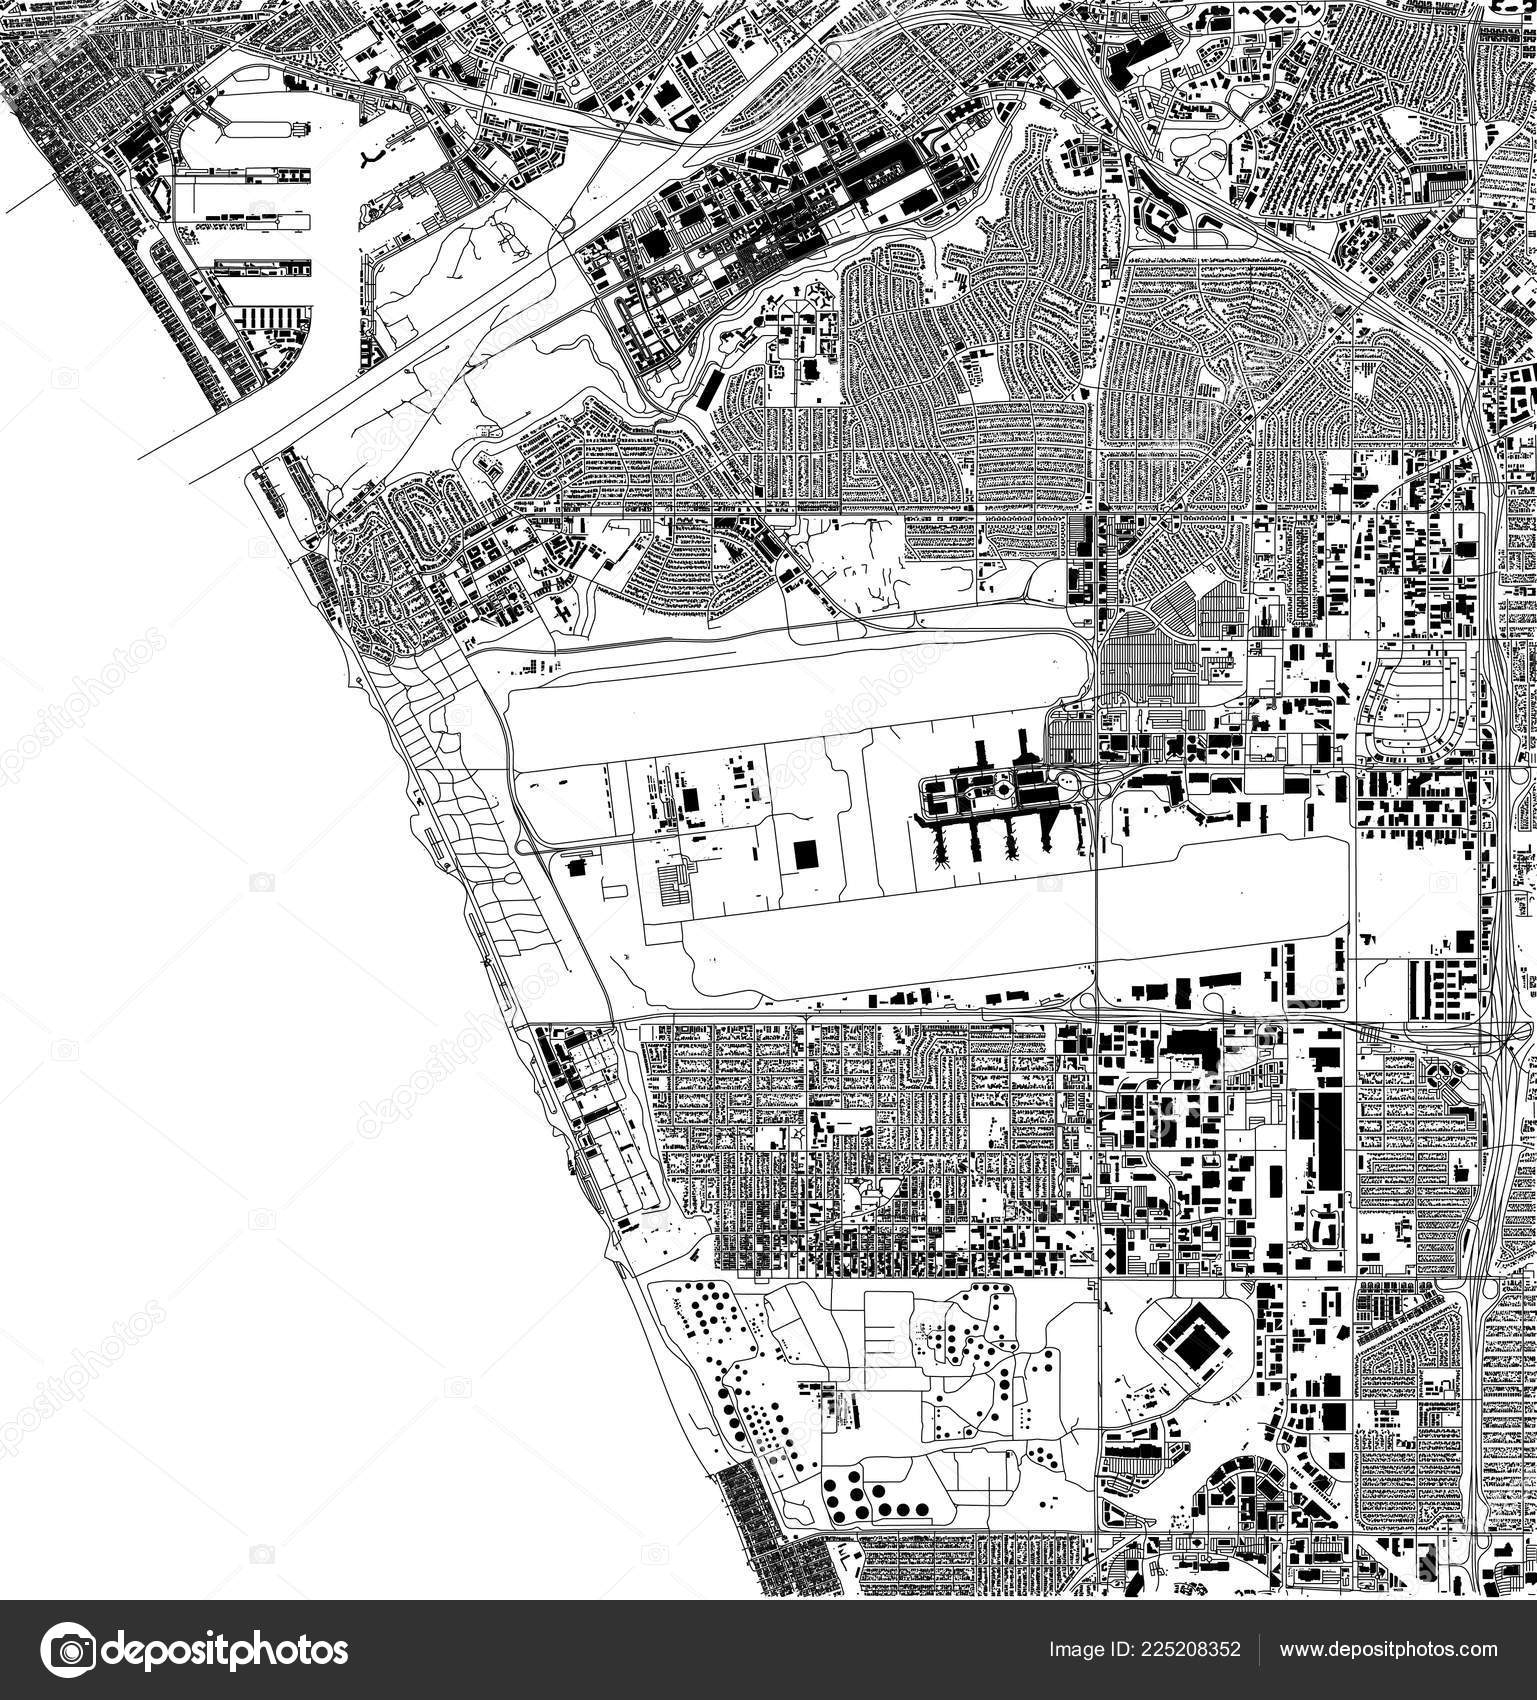 Satellite Map Los Angeles Airport California Usa City ... on u.s. white house, curtis smith white house, gyrocopter white house, aerial view white house, map of white house, omar gonzalez white house, power map white house, prince white house, ariana grande white house, satellite maps aerial view of my home, lincoln's white house, front door colors for white house, first white house, barvetta singletary white house, rainbow colored white house, rihanna white house, satellite view house by address, ciara white house, 2015 white house, street map white house,